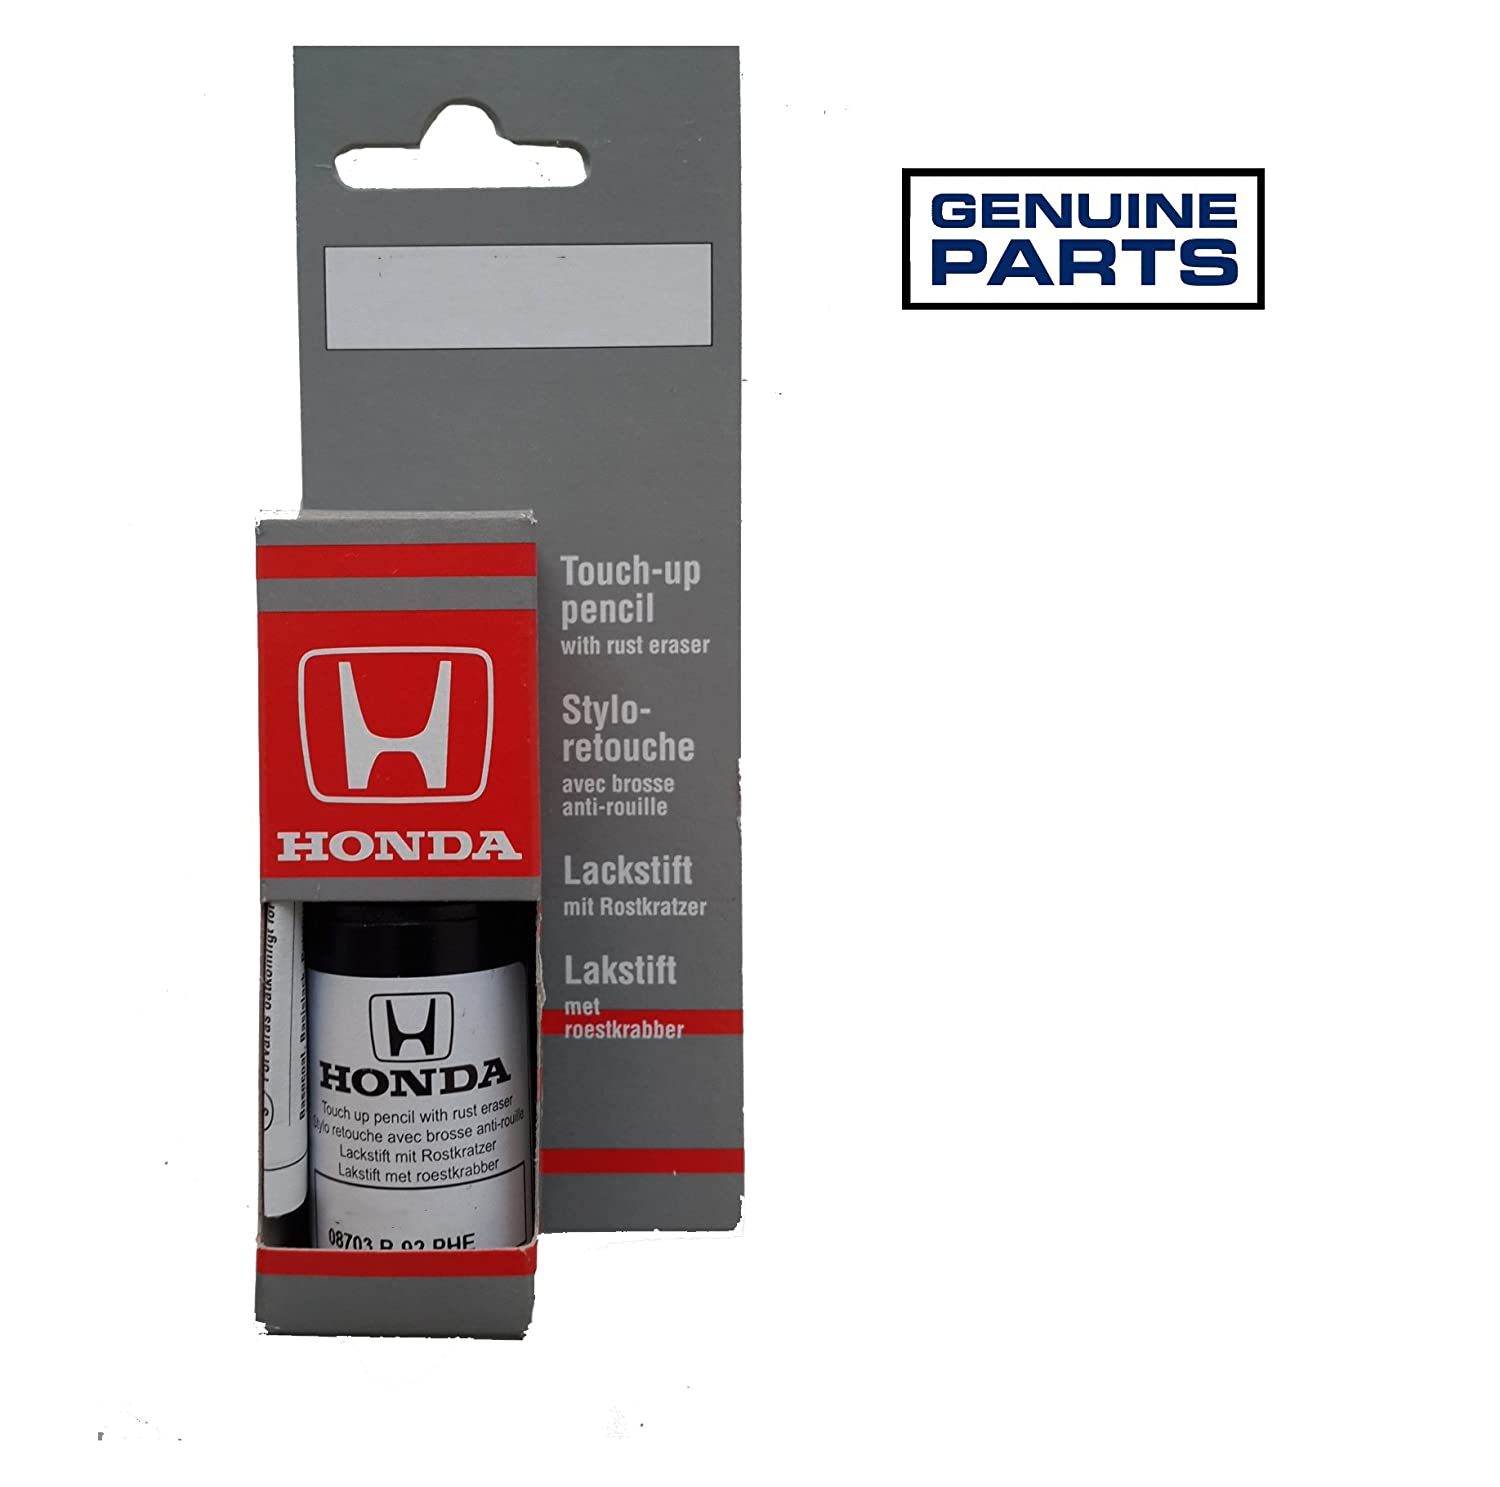 honda forum acura paint here click sale for filters mdx up touch lovely of oil items